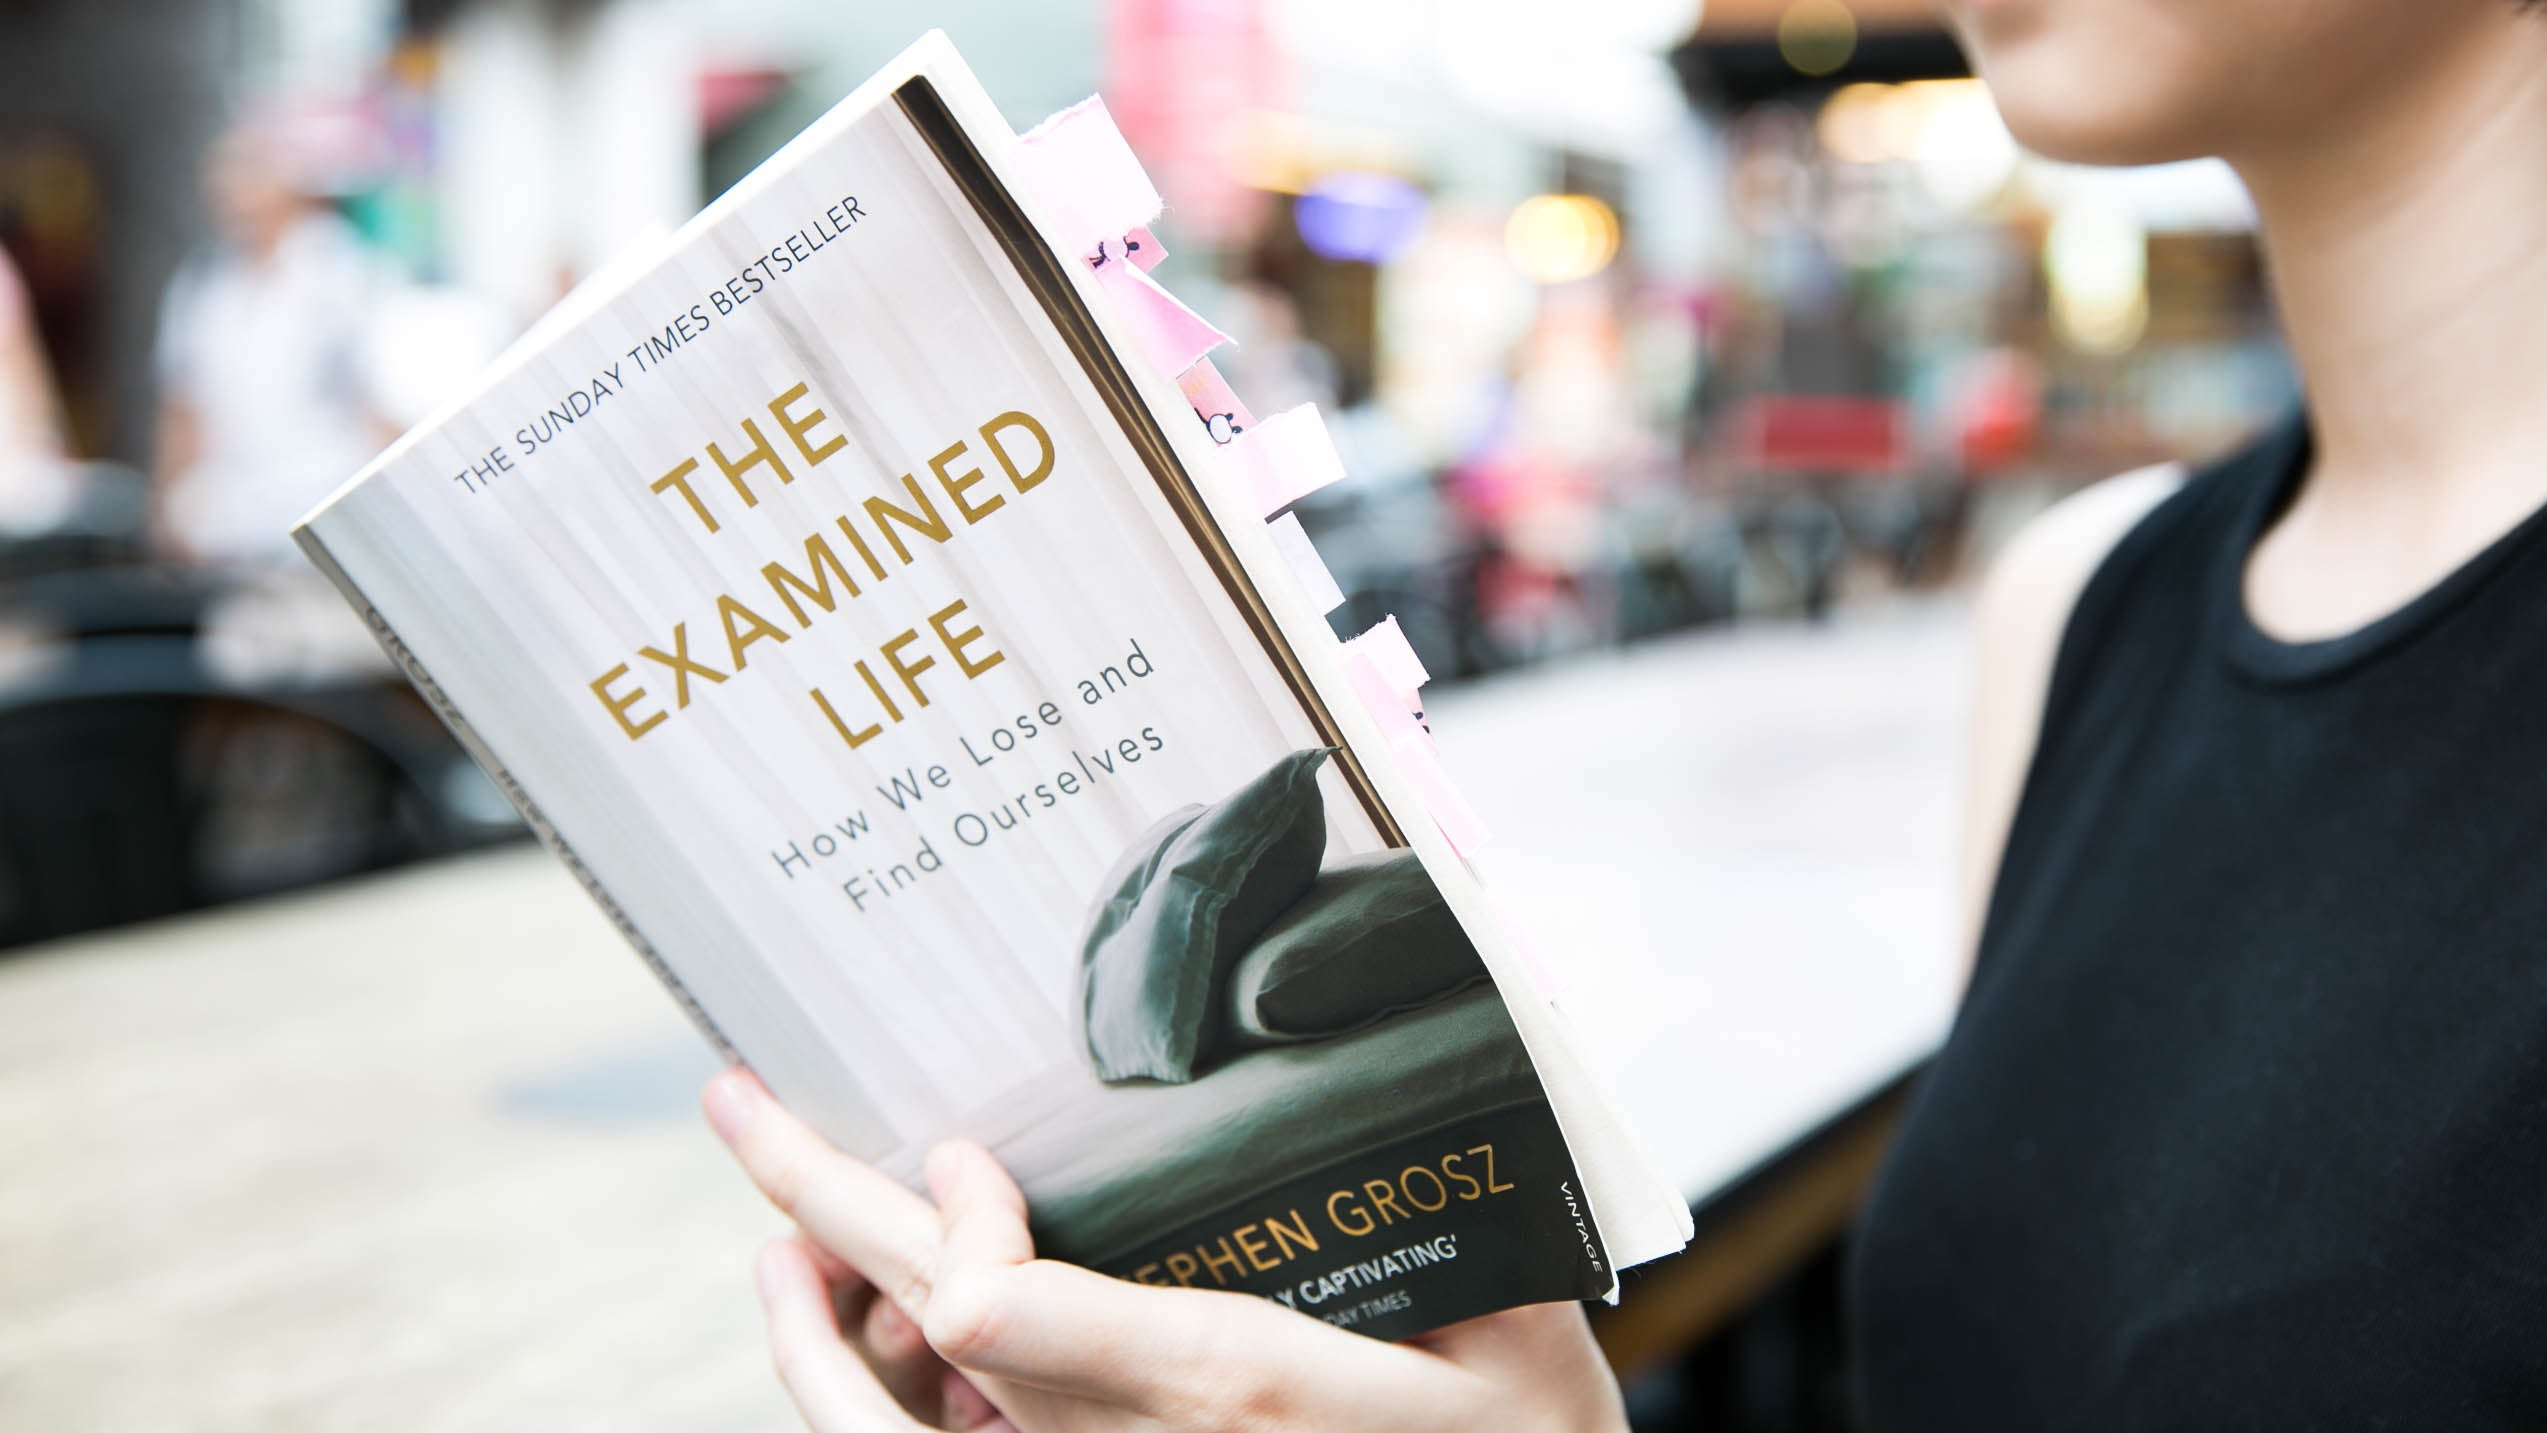 The Examined Life >> Book Review The Examined Life By Stephen Grosz The Mindful Company